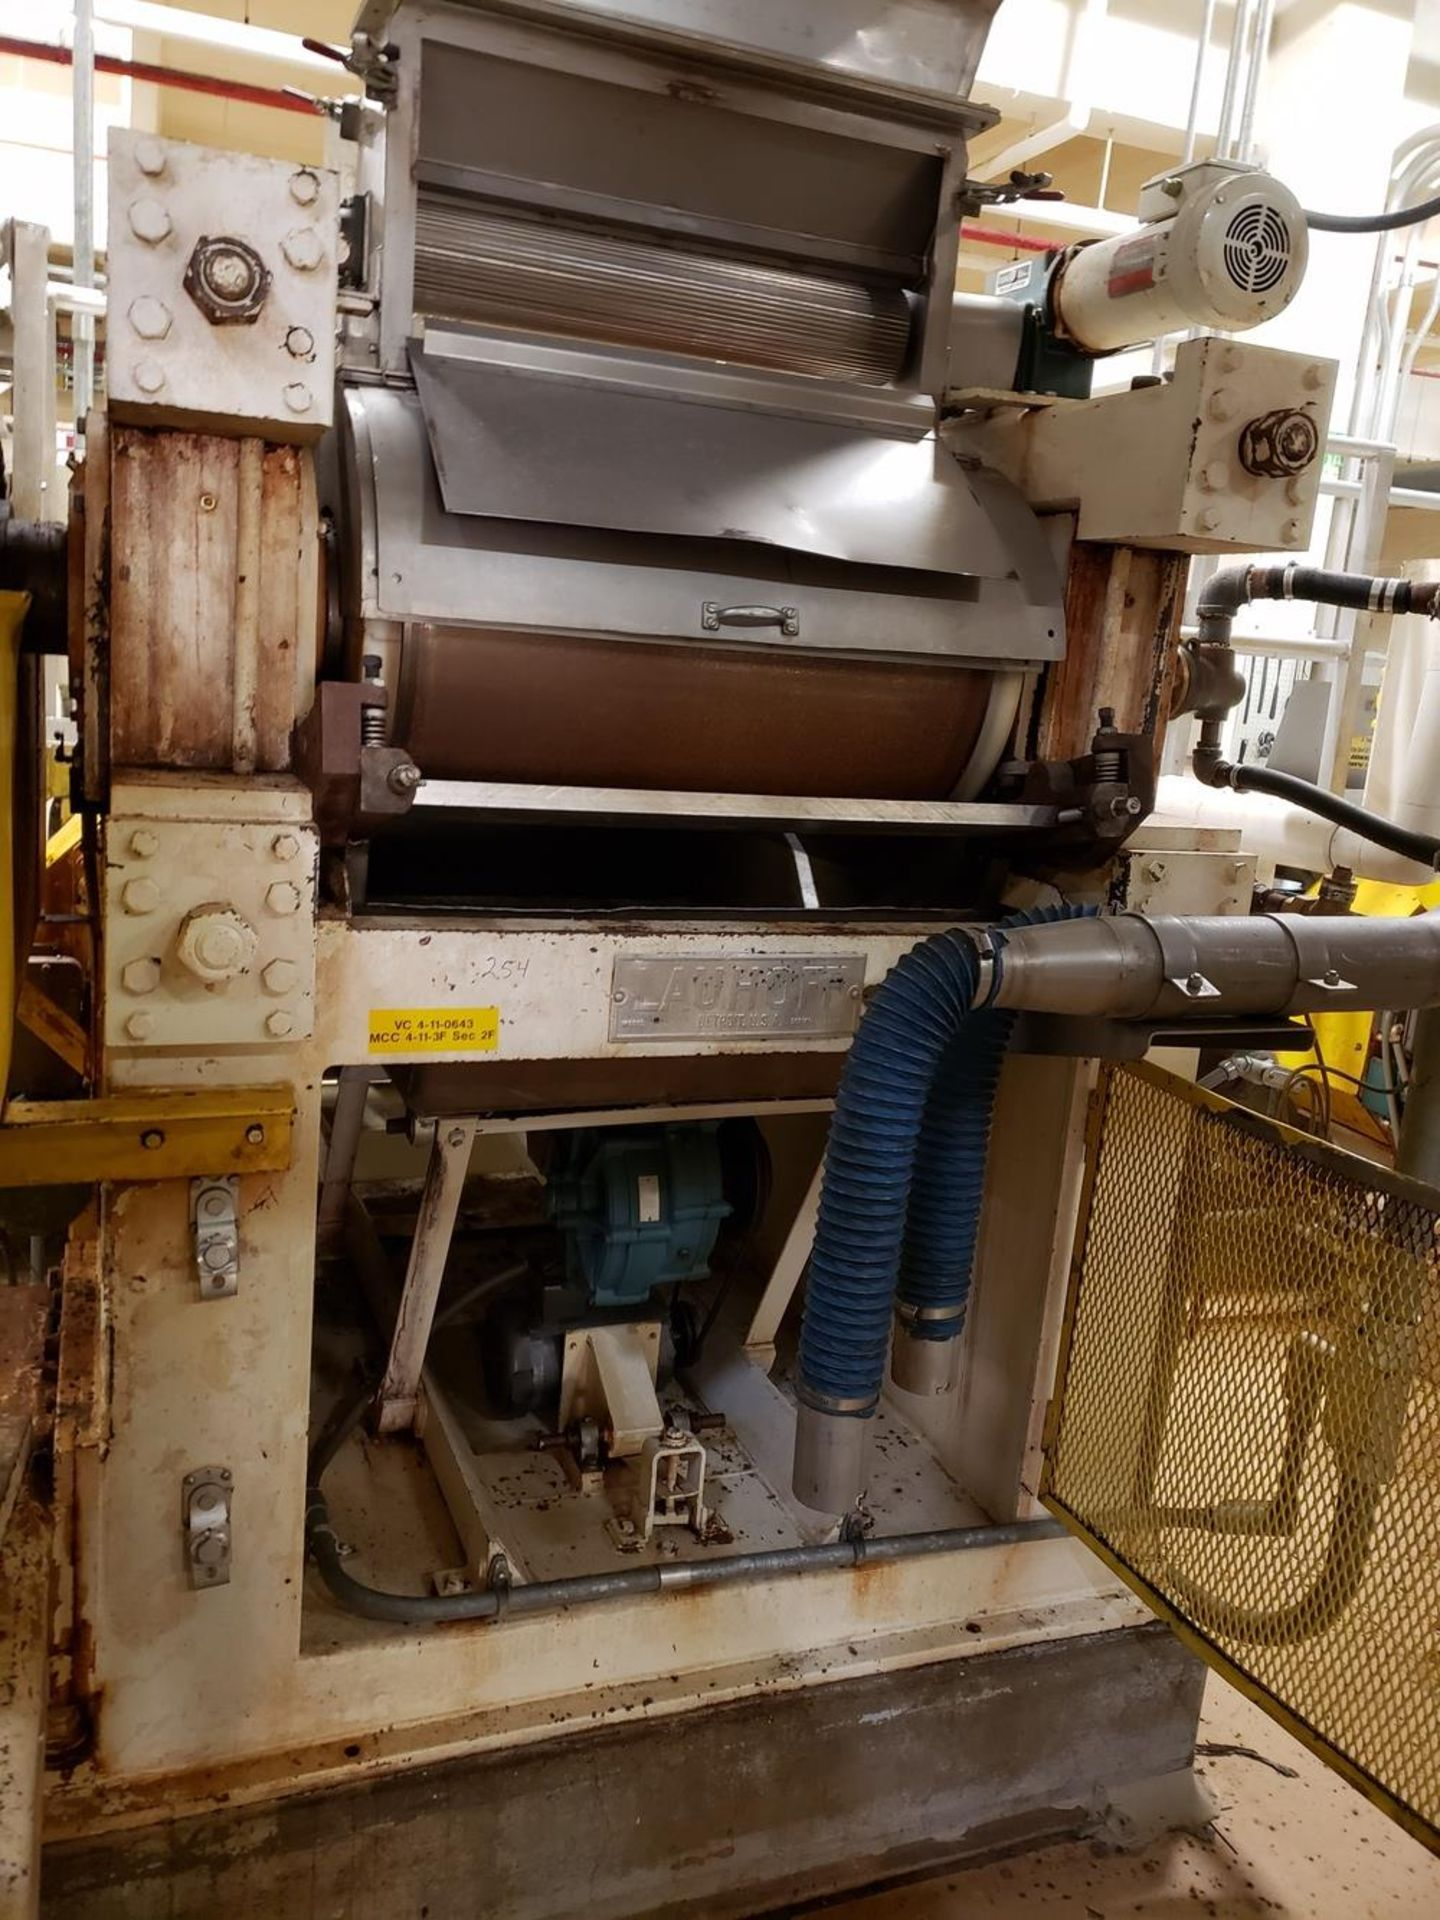 Lot 254 - Lauhoff Flaking Roll, 75 HP | Rig Fee: Contact Rigger